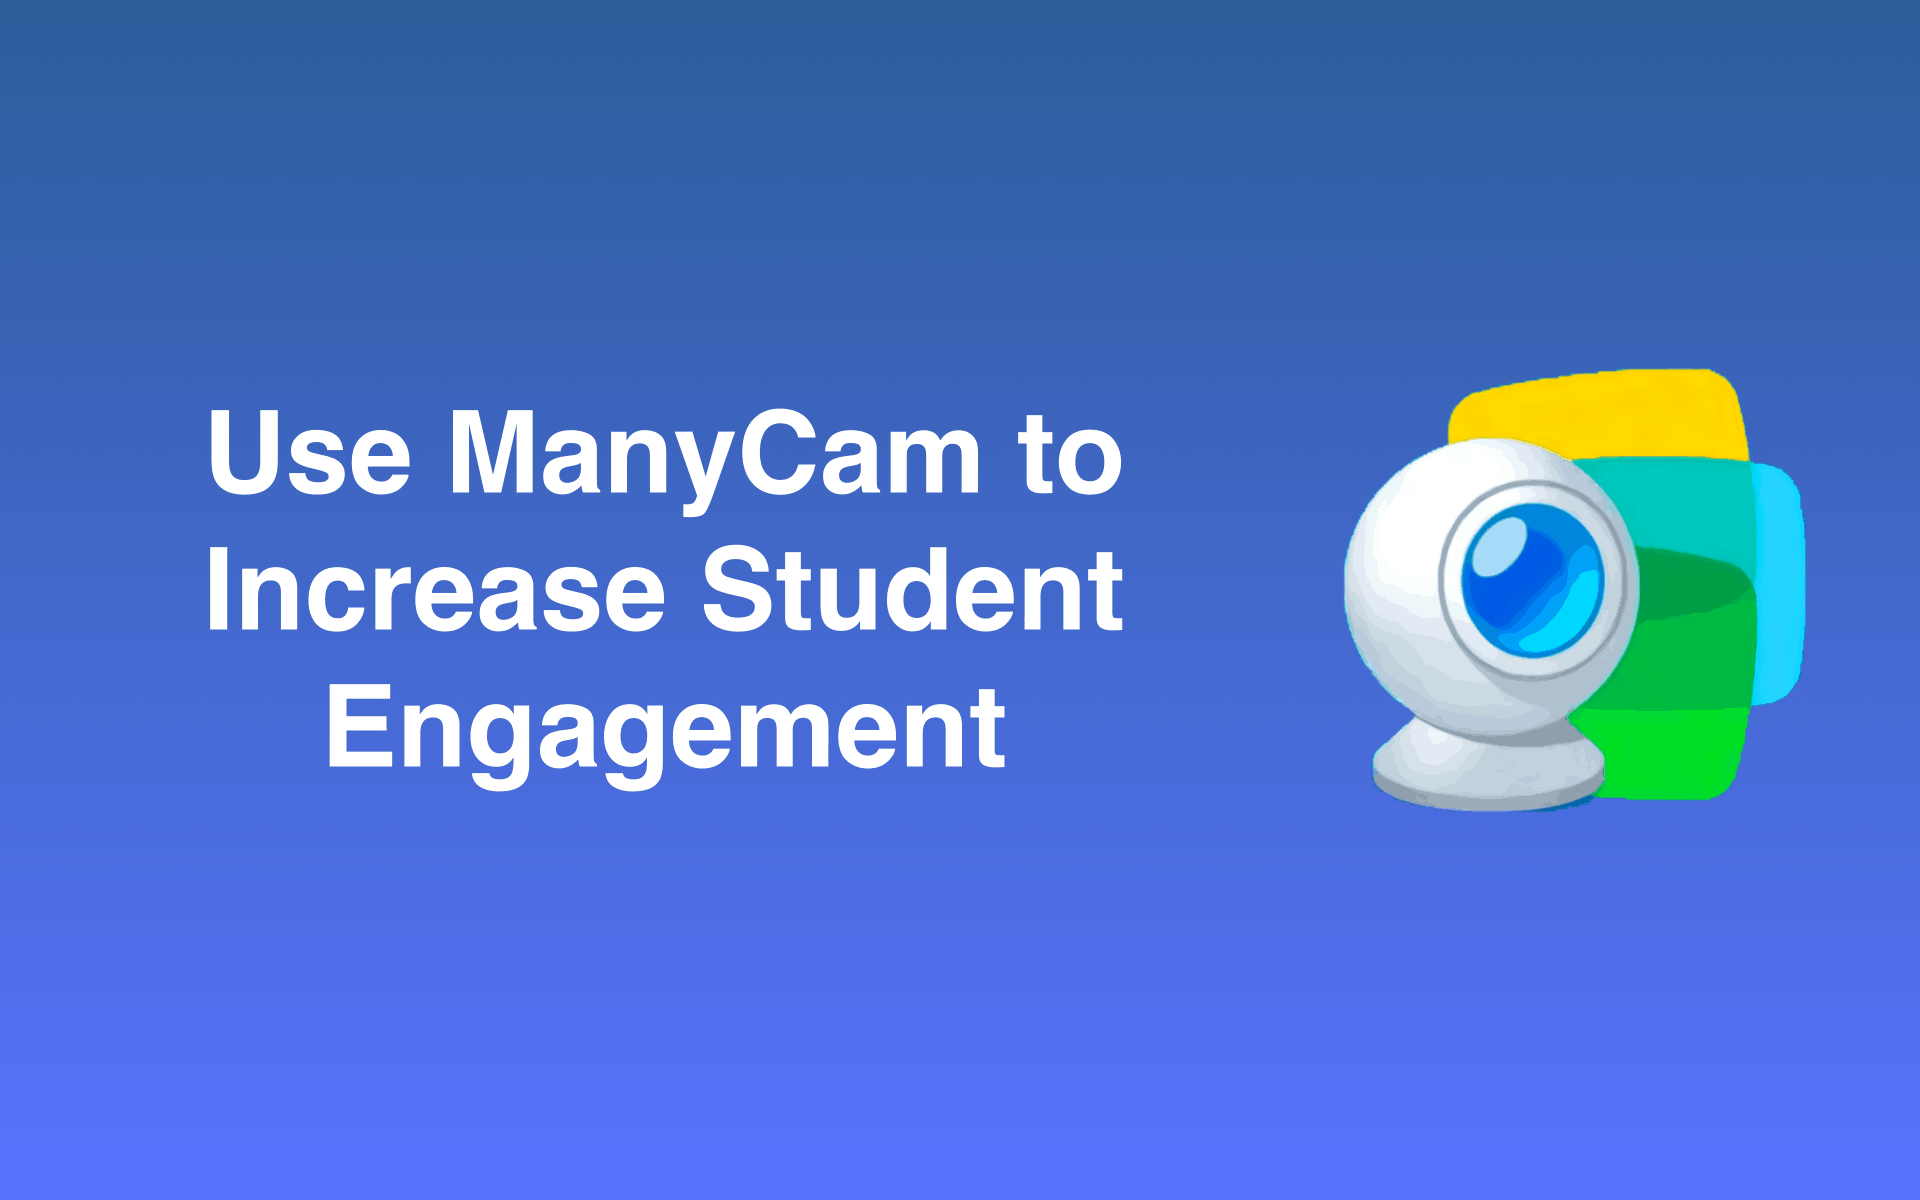 Use Manycam To Increase Student Engagement